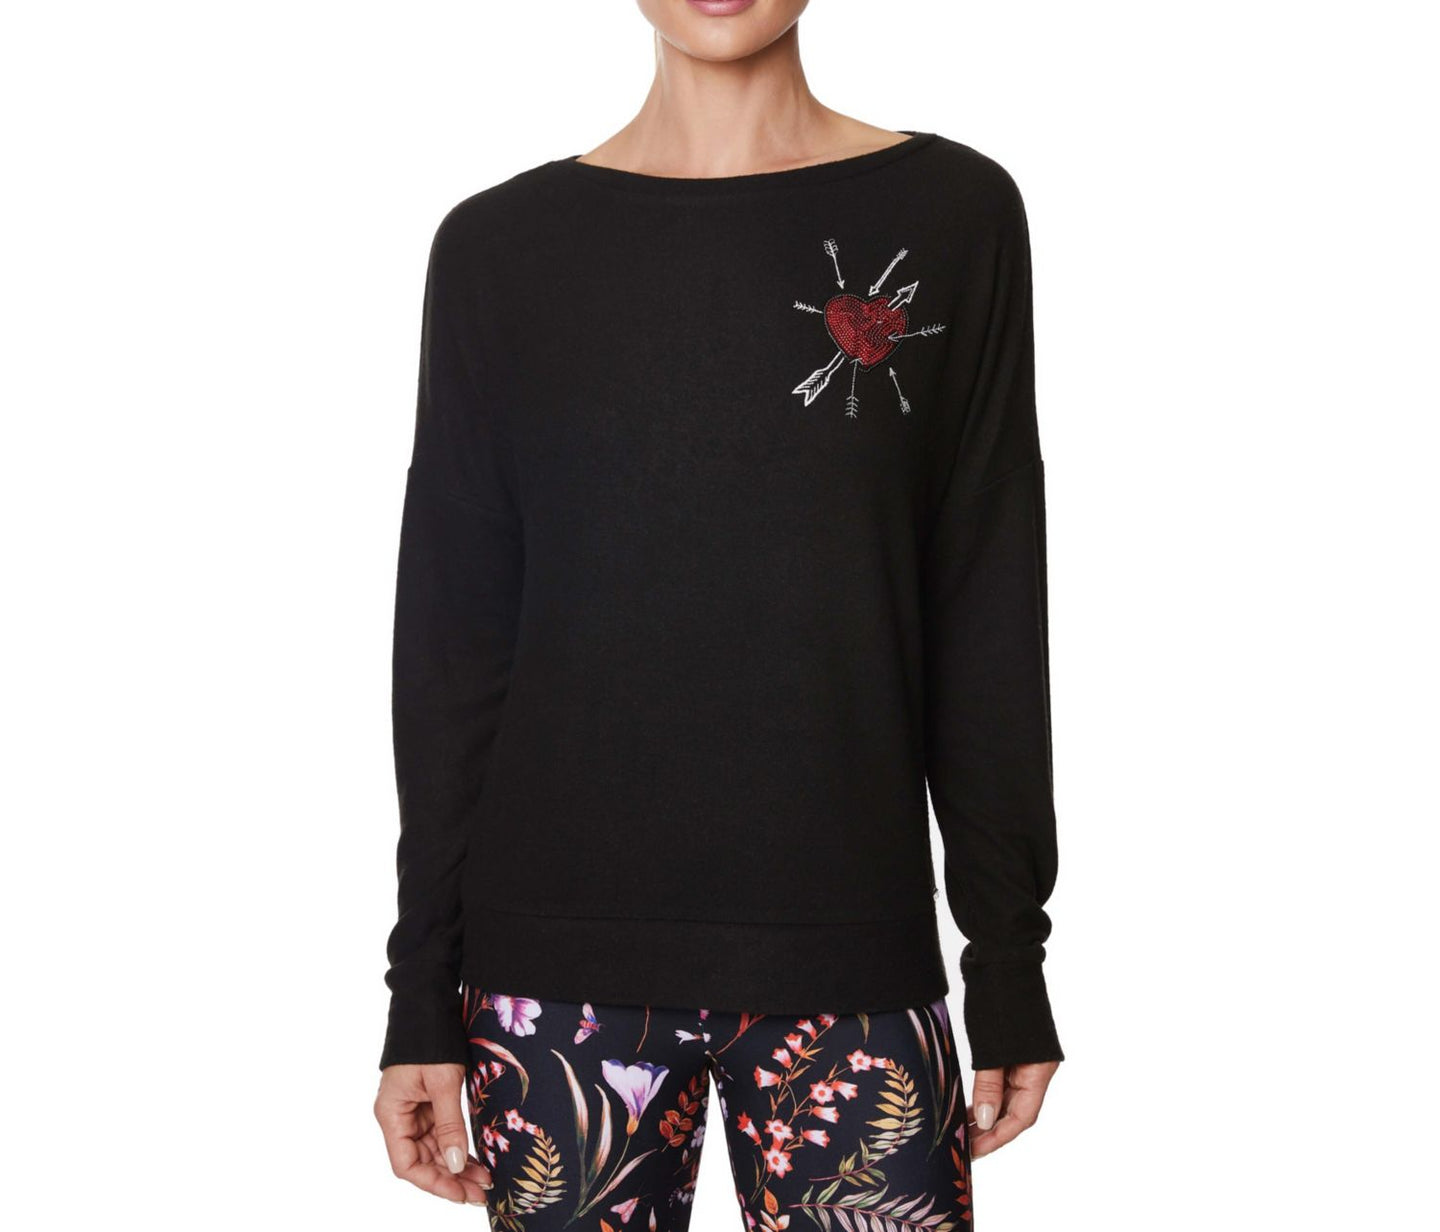 LOVE IS ALL THERE IS SWEATSHIRT BLACK - APPAREL - Betsey Johnson